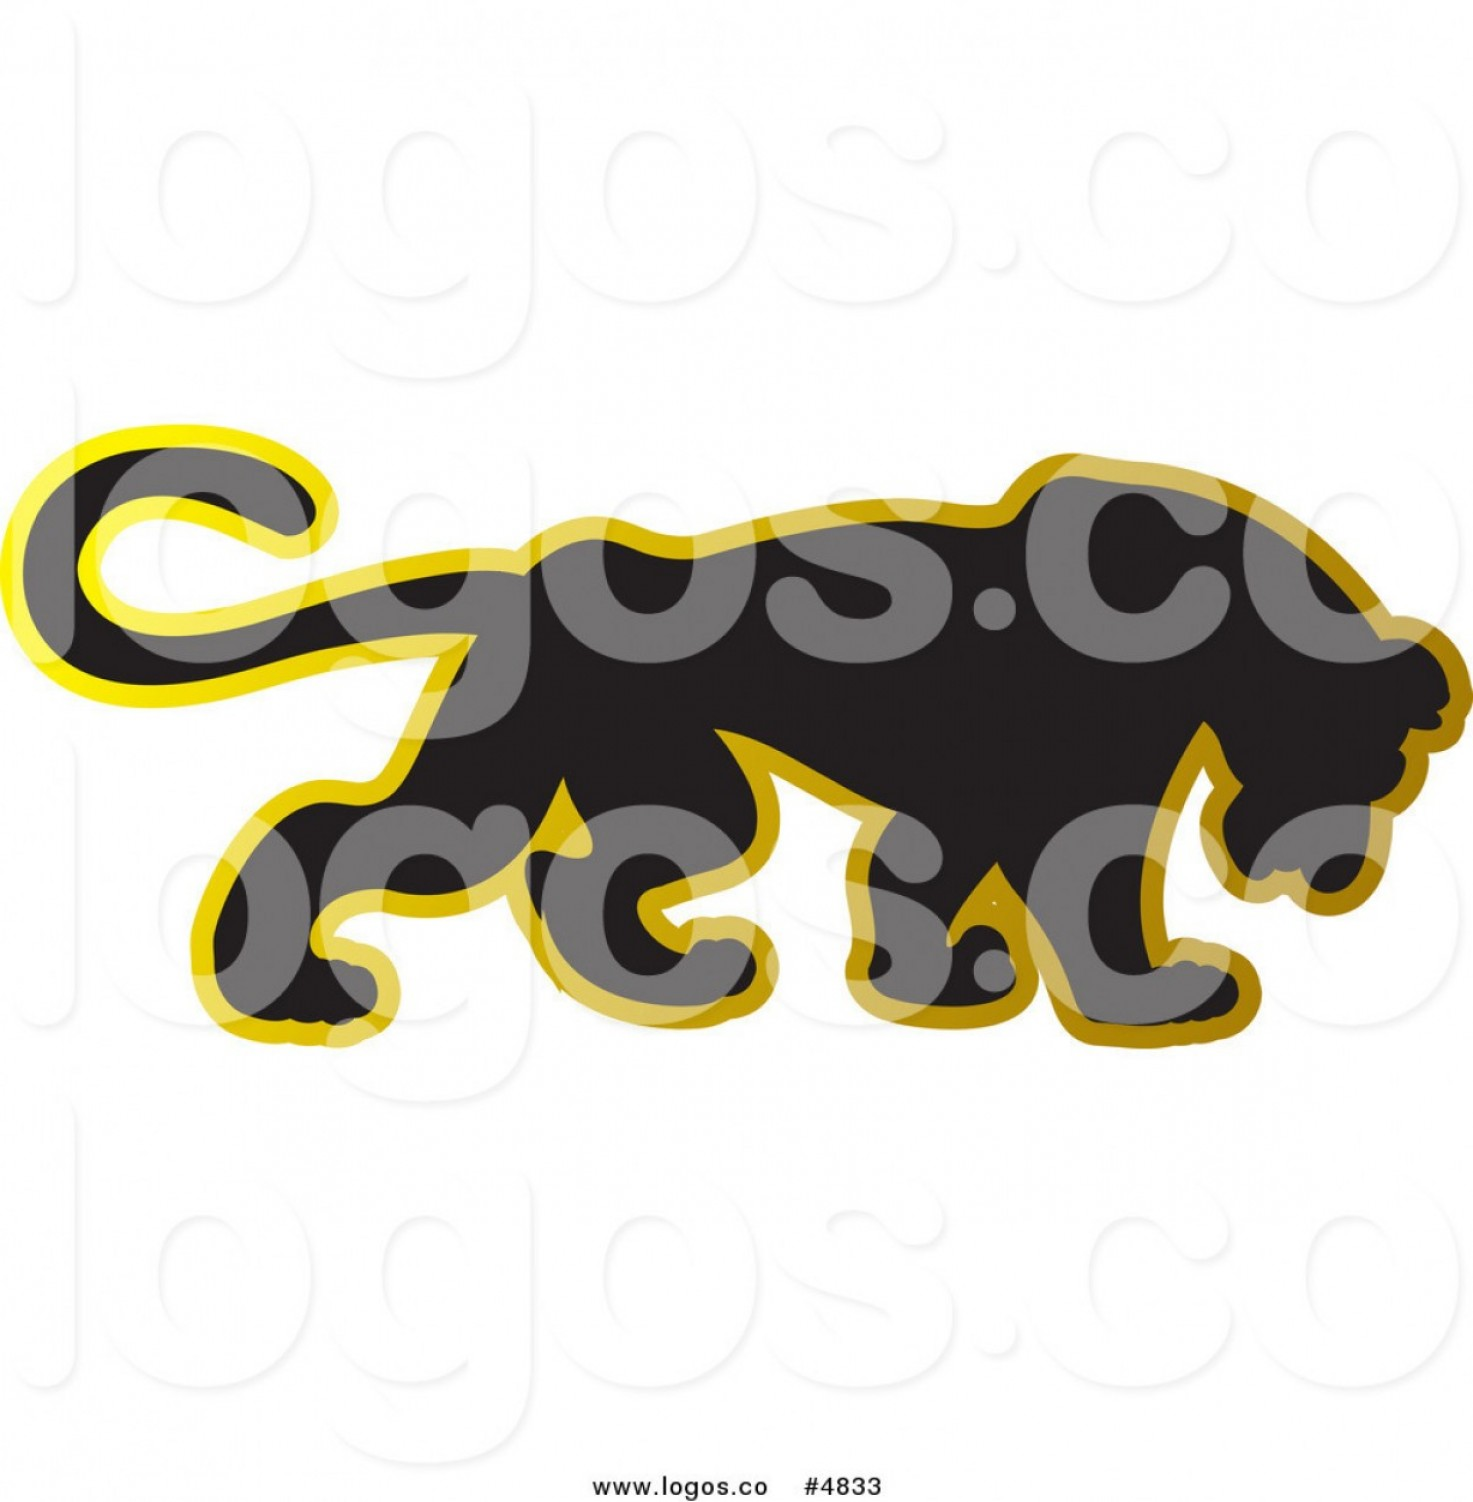 Panther Vector: Royalty Free Vector Of A Black Panther Logo With A Gold Outline By Lal Perera